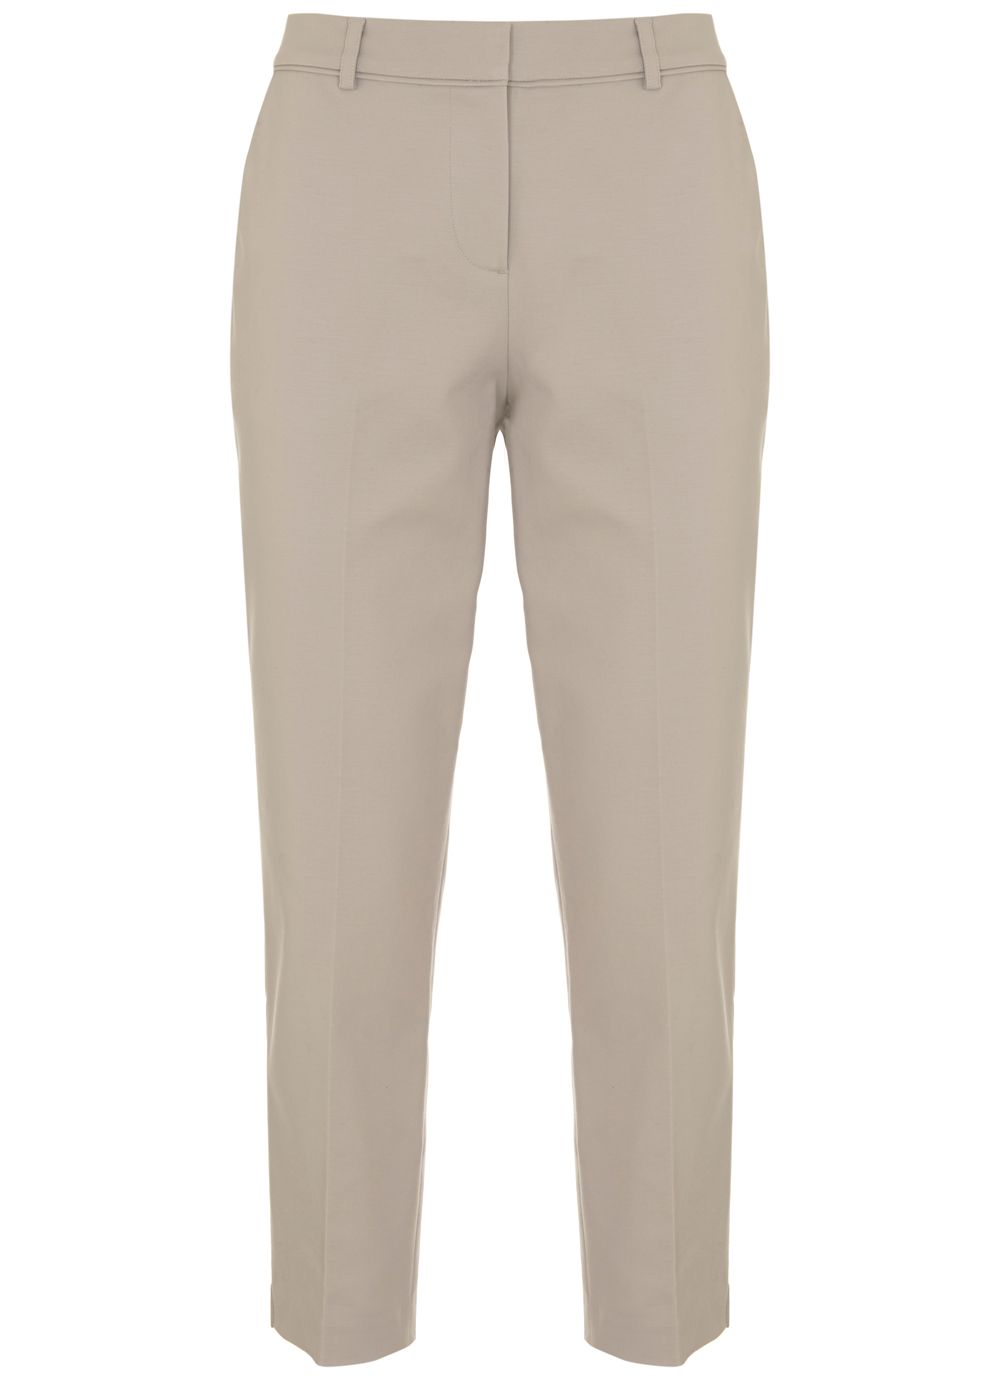 Mint Velvet Oyster Stretch Cotton Crop Trouser, Neutral